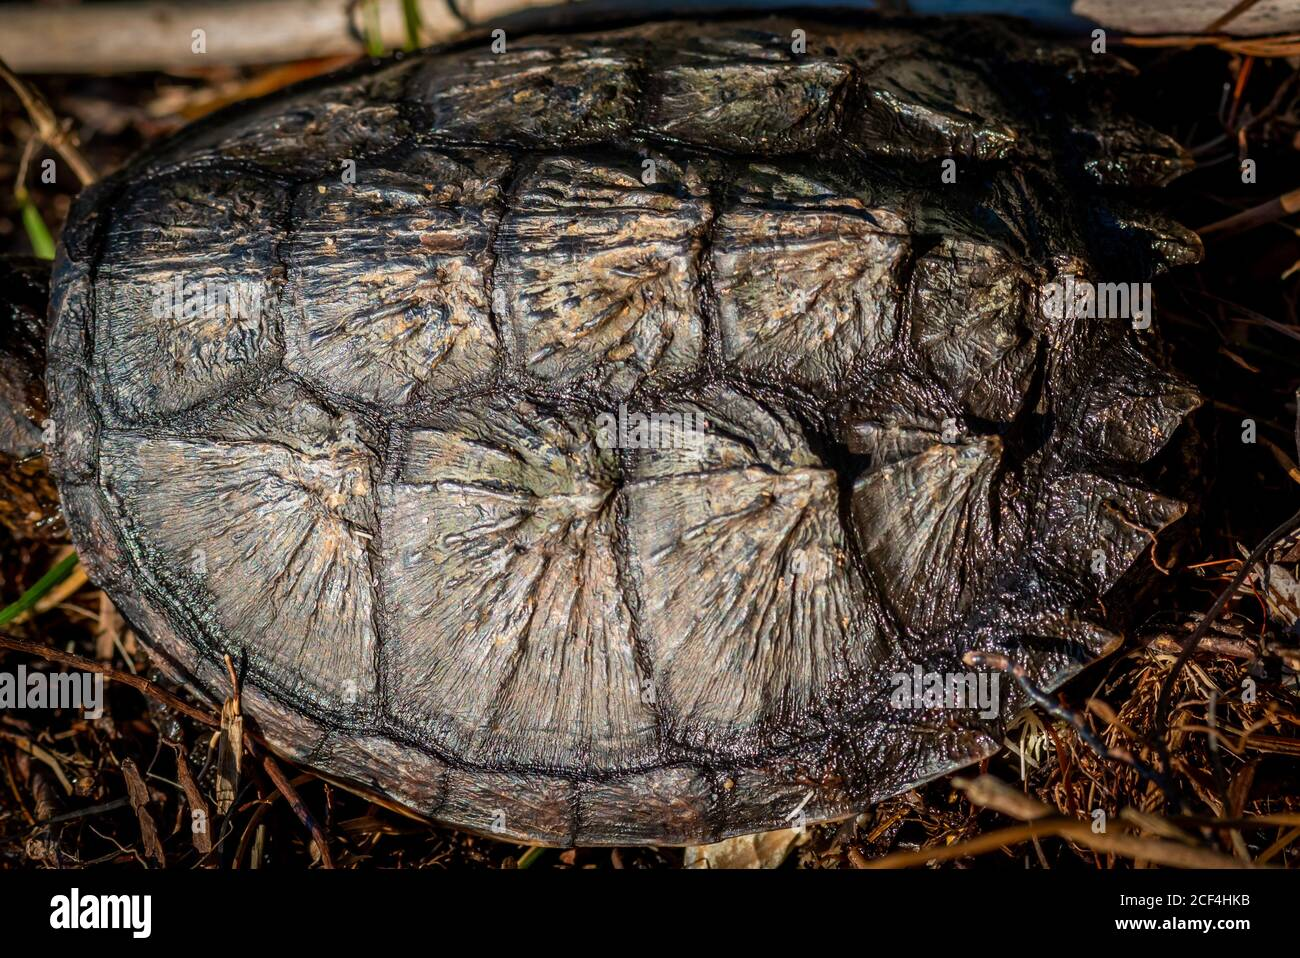 Close-up of the shell of a  young Common Snapping Turtle (Chelydra serpentina). Stock Photo